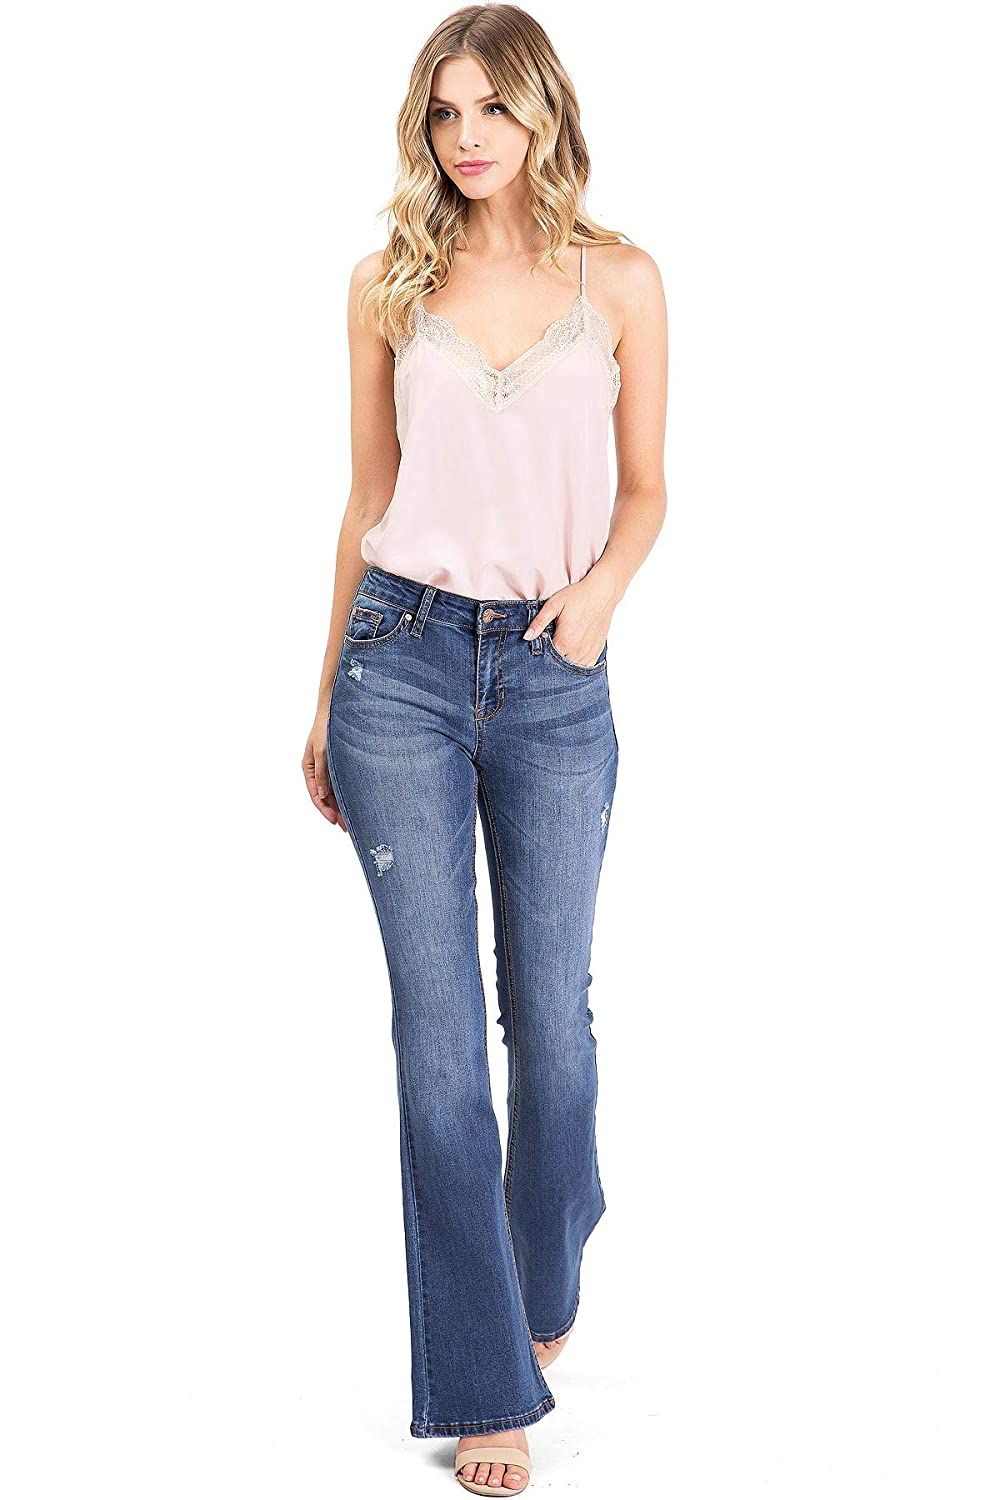 Celebrity Pink Womens Juniors High Waisted Flared Bell Bottom Jeans